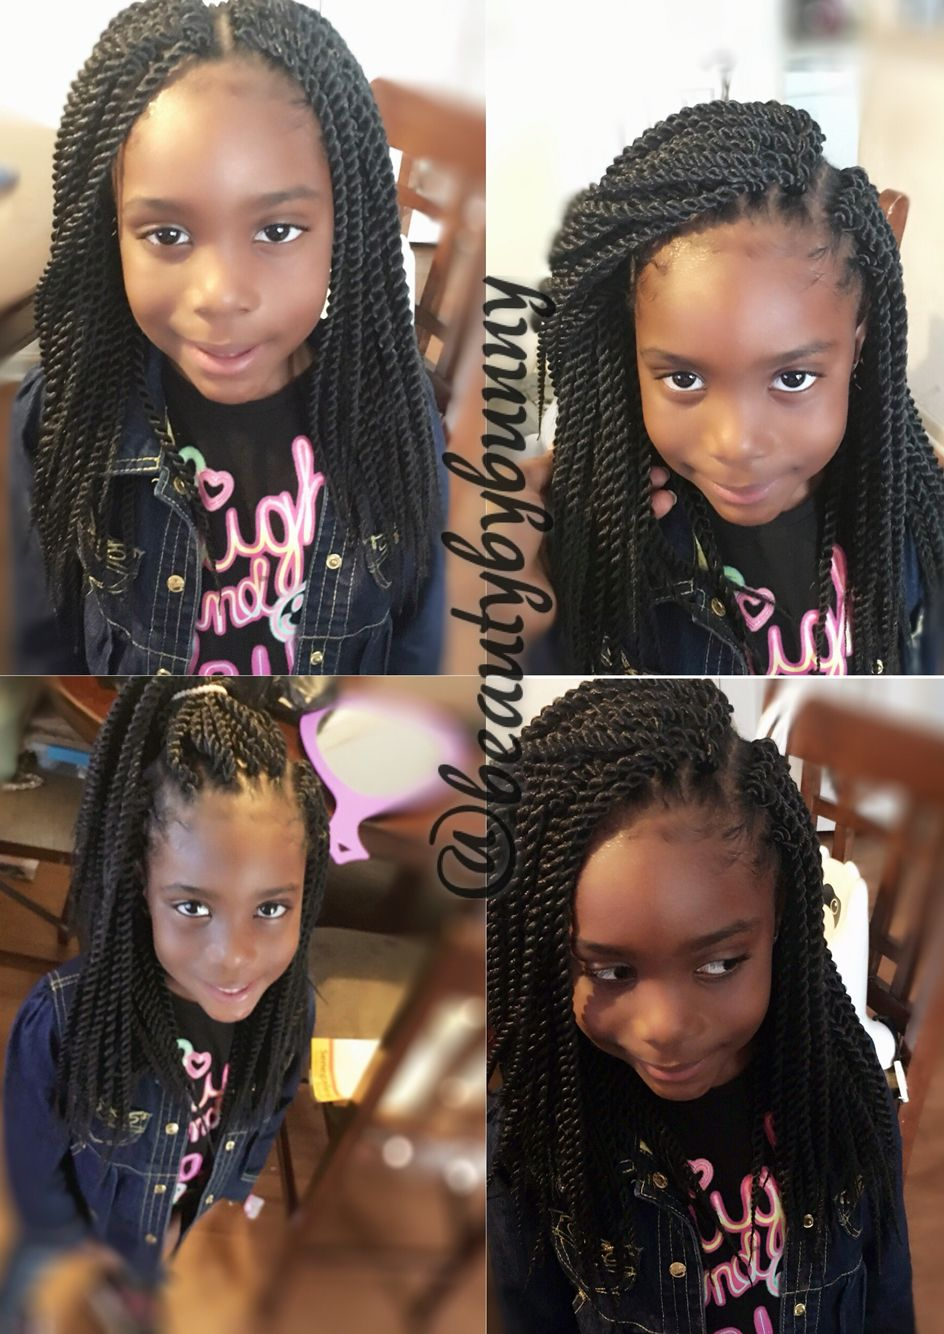 Kids Crotchet Braids Ig Beautybybunny Crotchet Braids Kids Hair Kids Braided Hairstyles Crochet Braids Hairstyles For Kids Kids Hairstyles